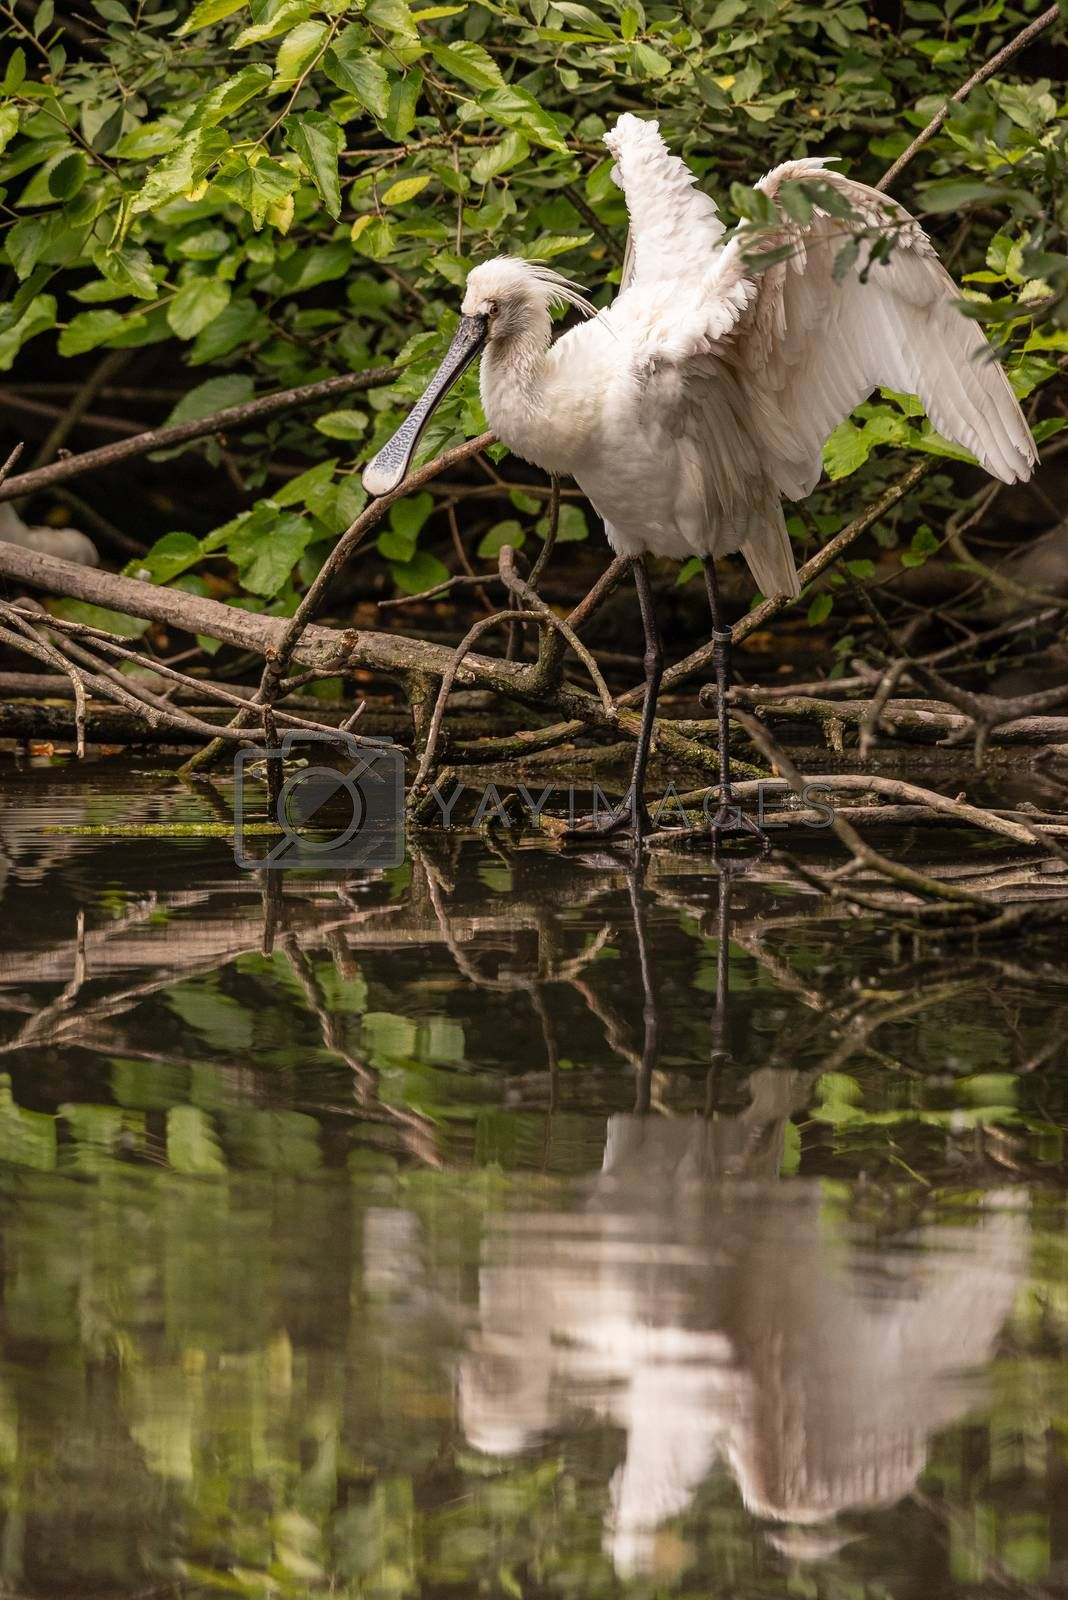 Eurasian common spoonbill opens wings reflected in a pond, image of white bird with large flat beak resting on tree branches